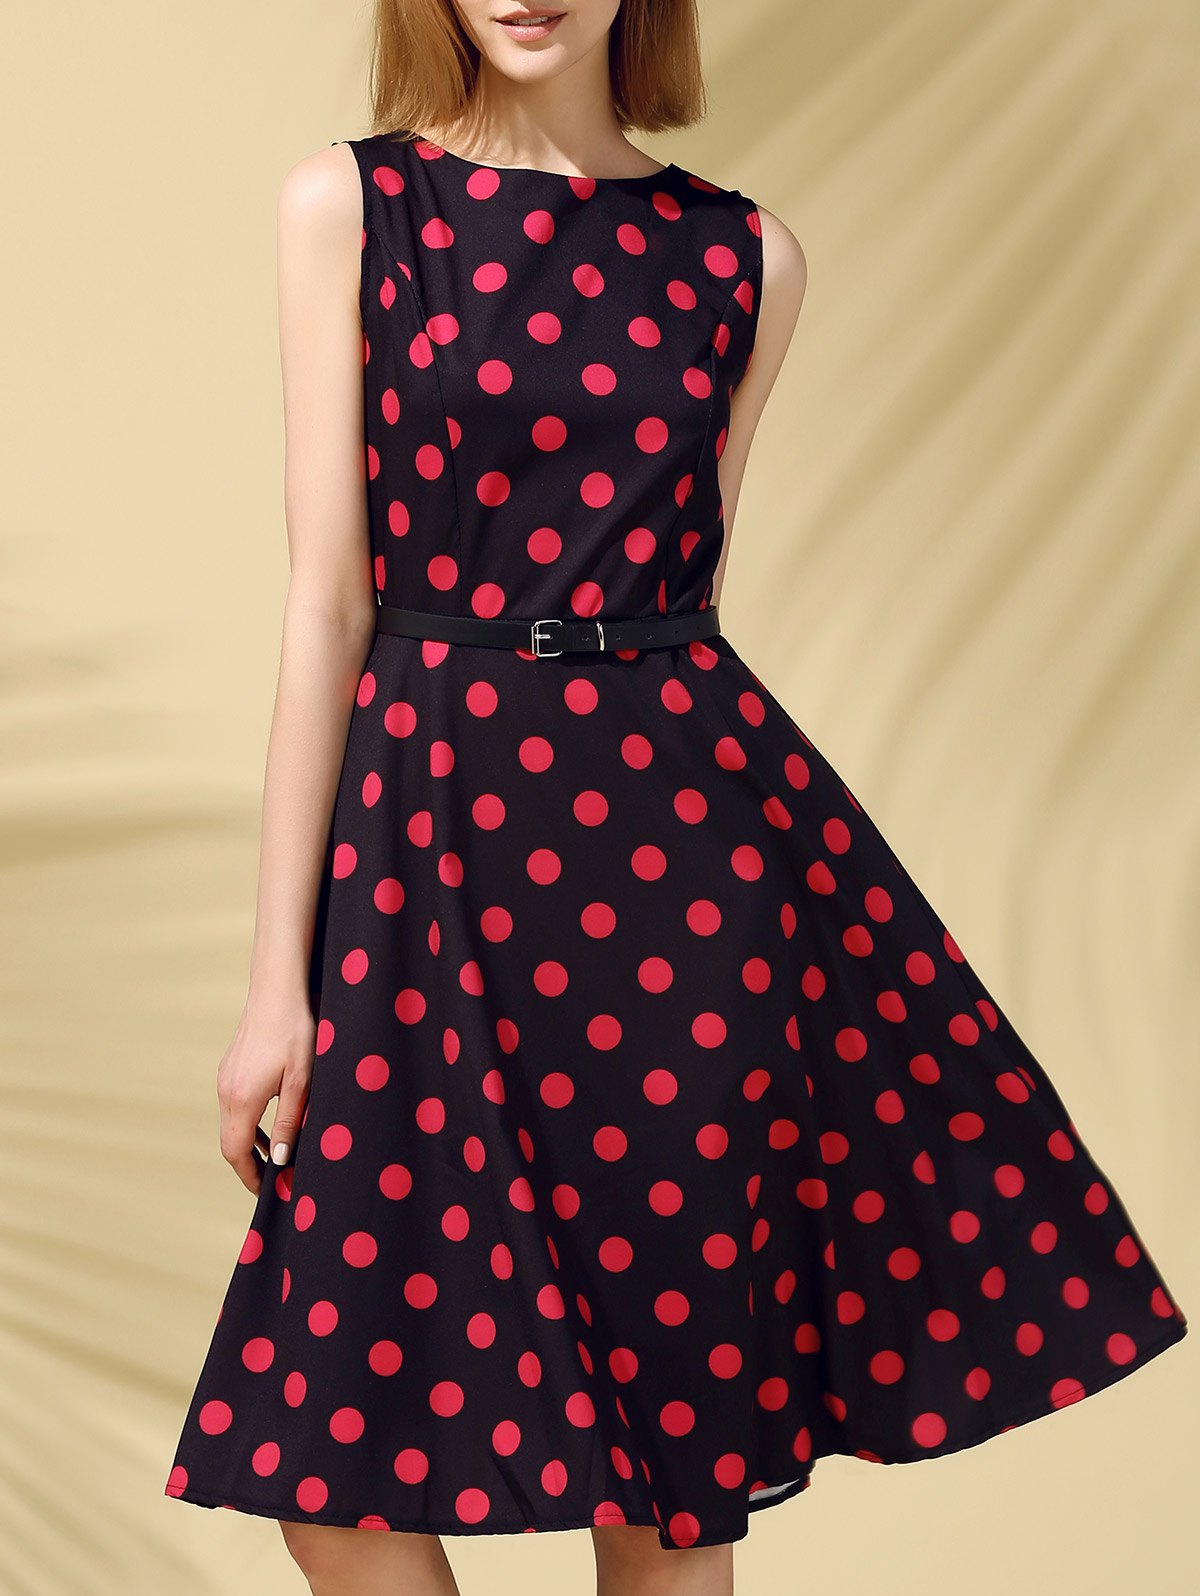 Retro Style Sleeveless Round Neck Polka Dot Women's Dress - BLACK L